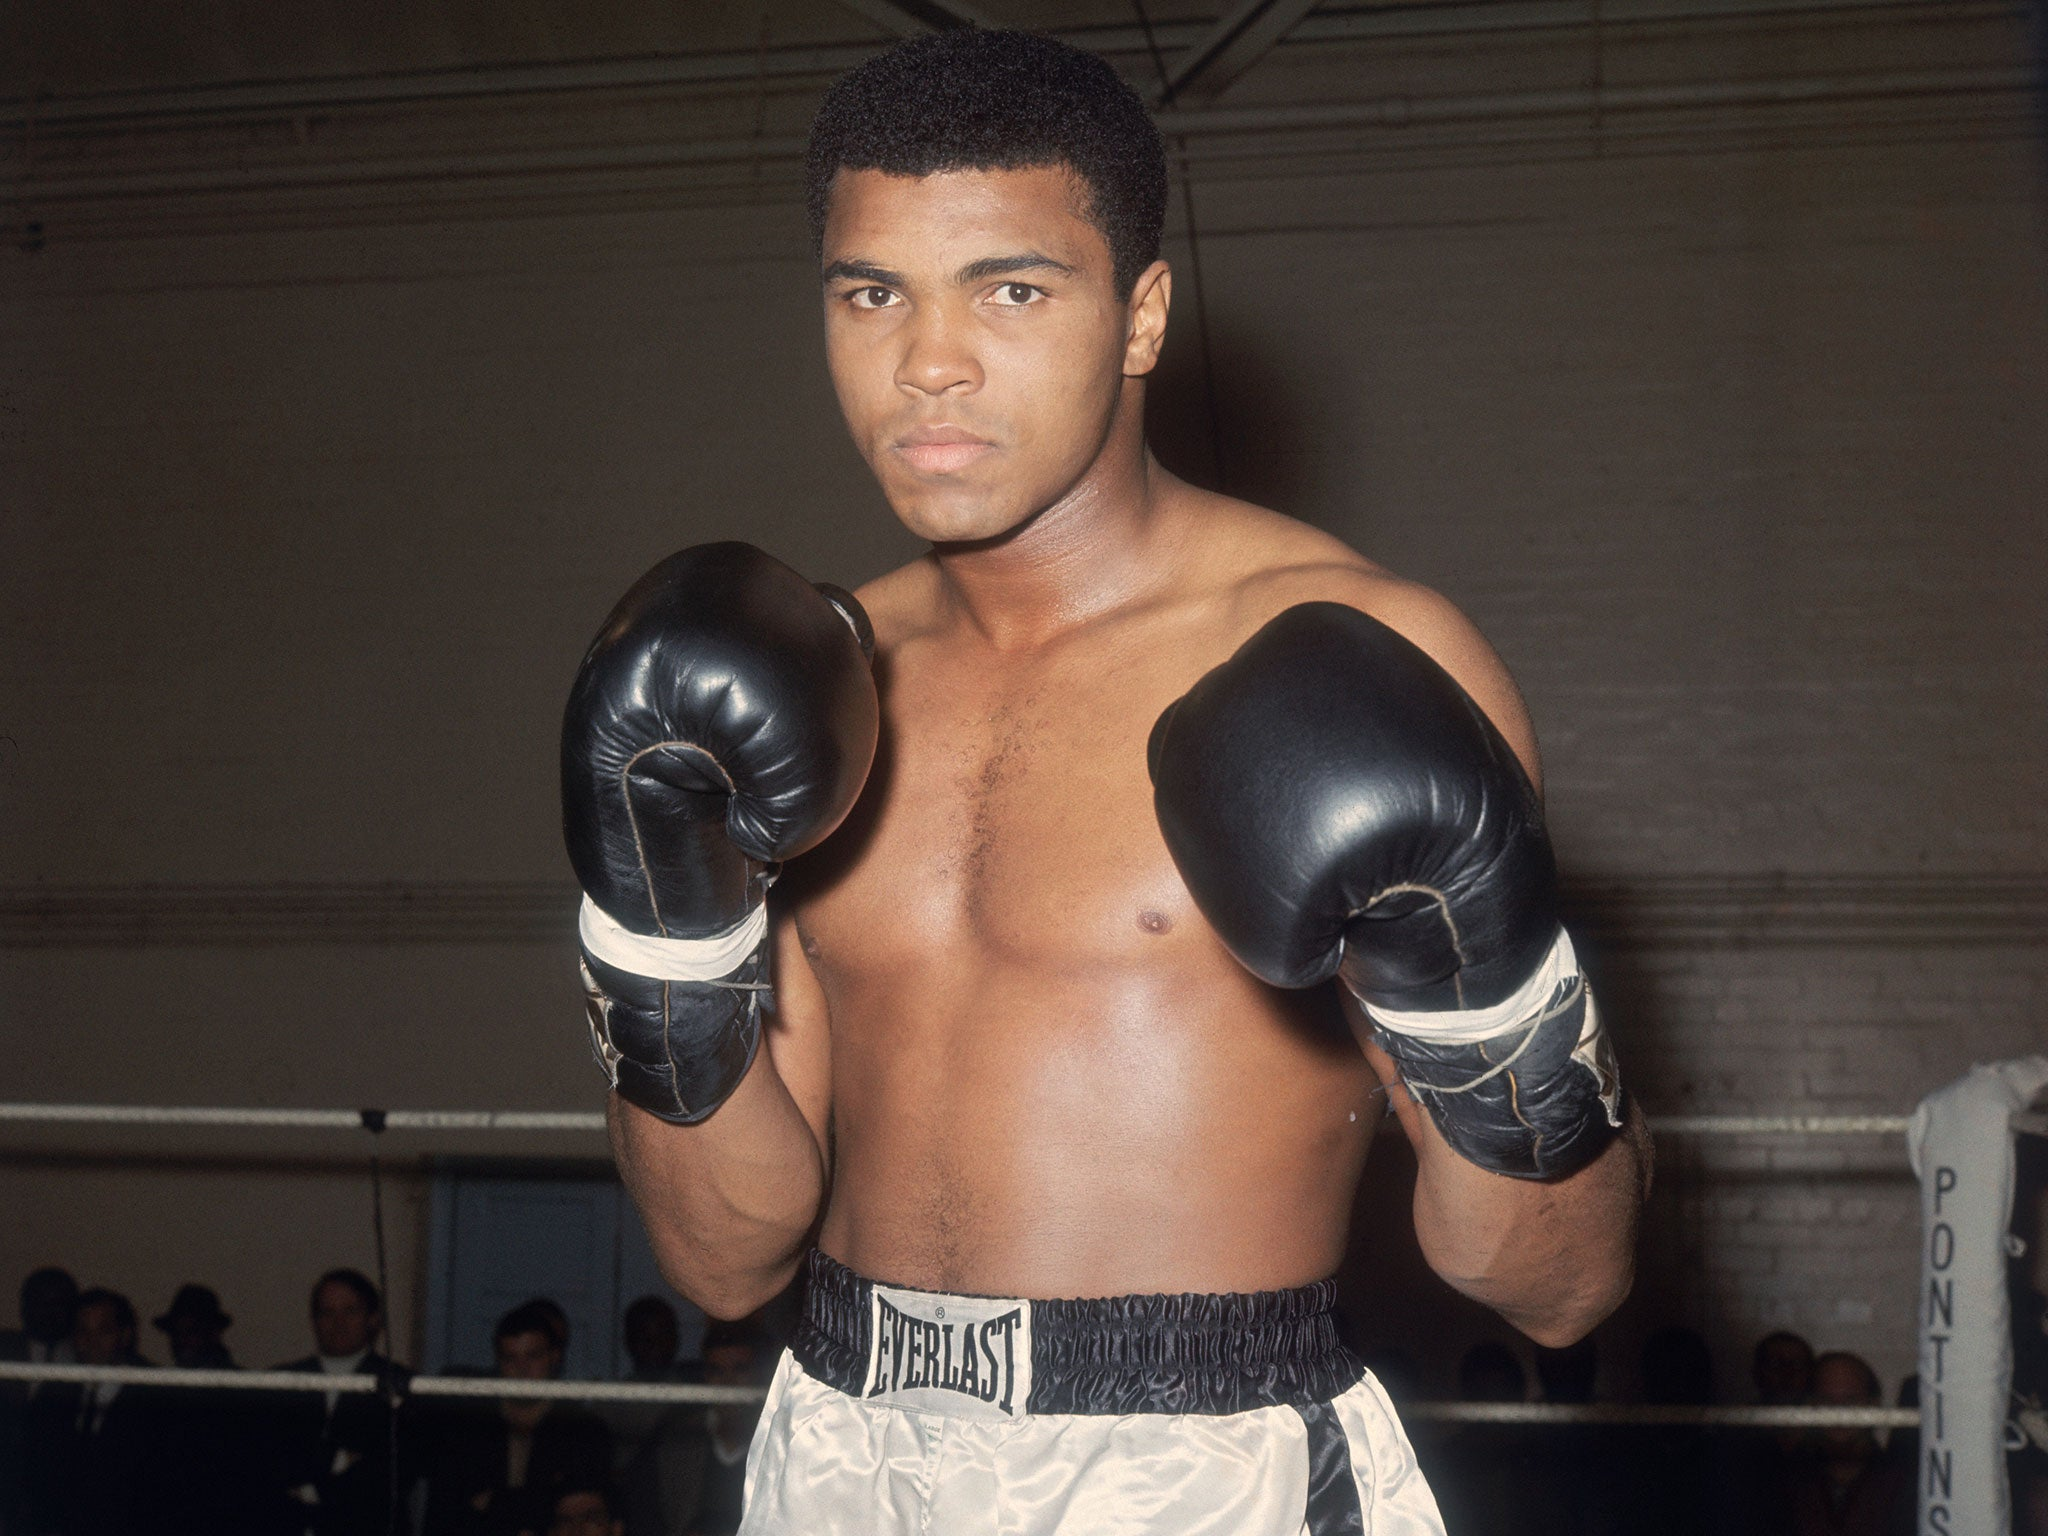 Muhammad Ali dead: 'The Greatest' who came to define an era in America and beyond | The Independent | The Independent